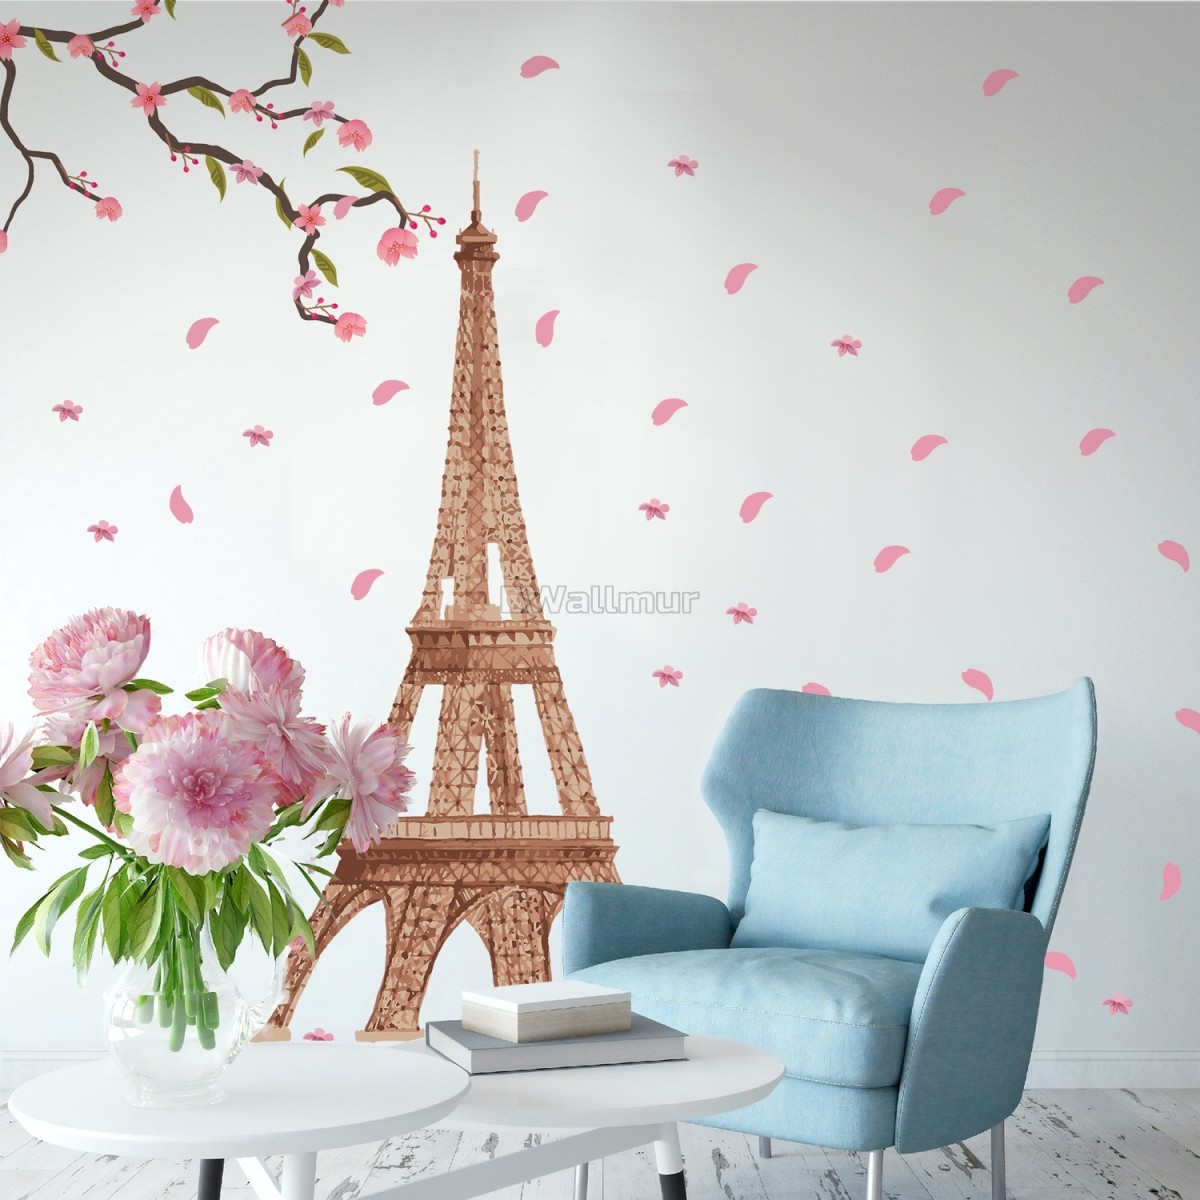 Paris Eiffel Tower with Cherry Blossom Wall Decal Sticker